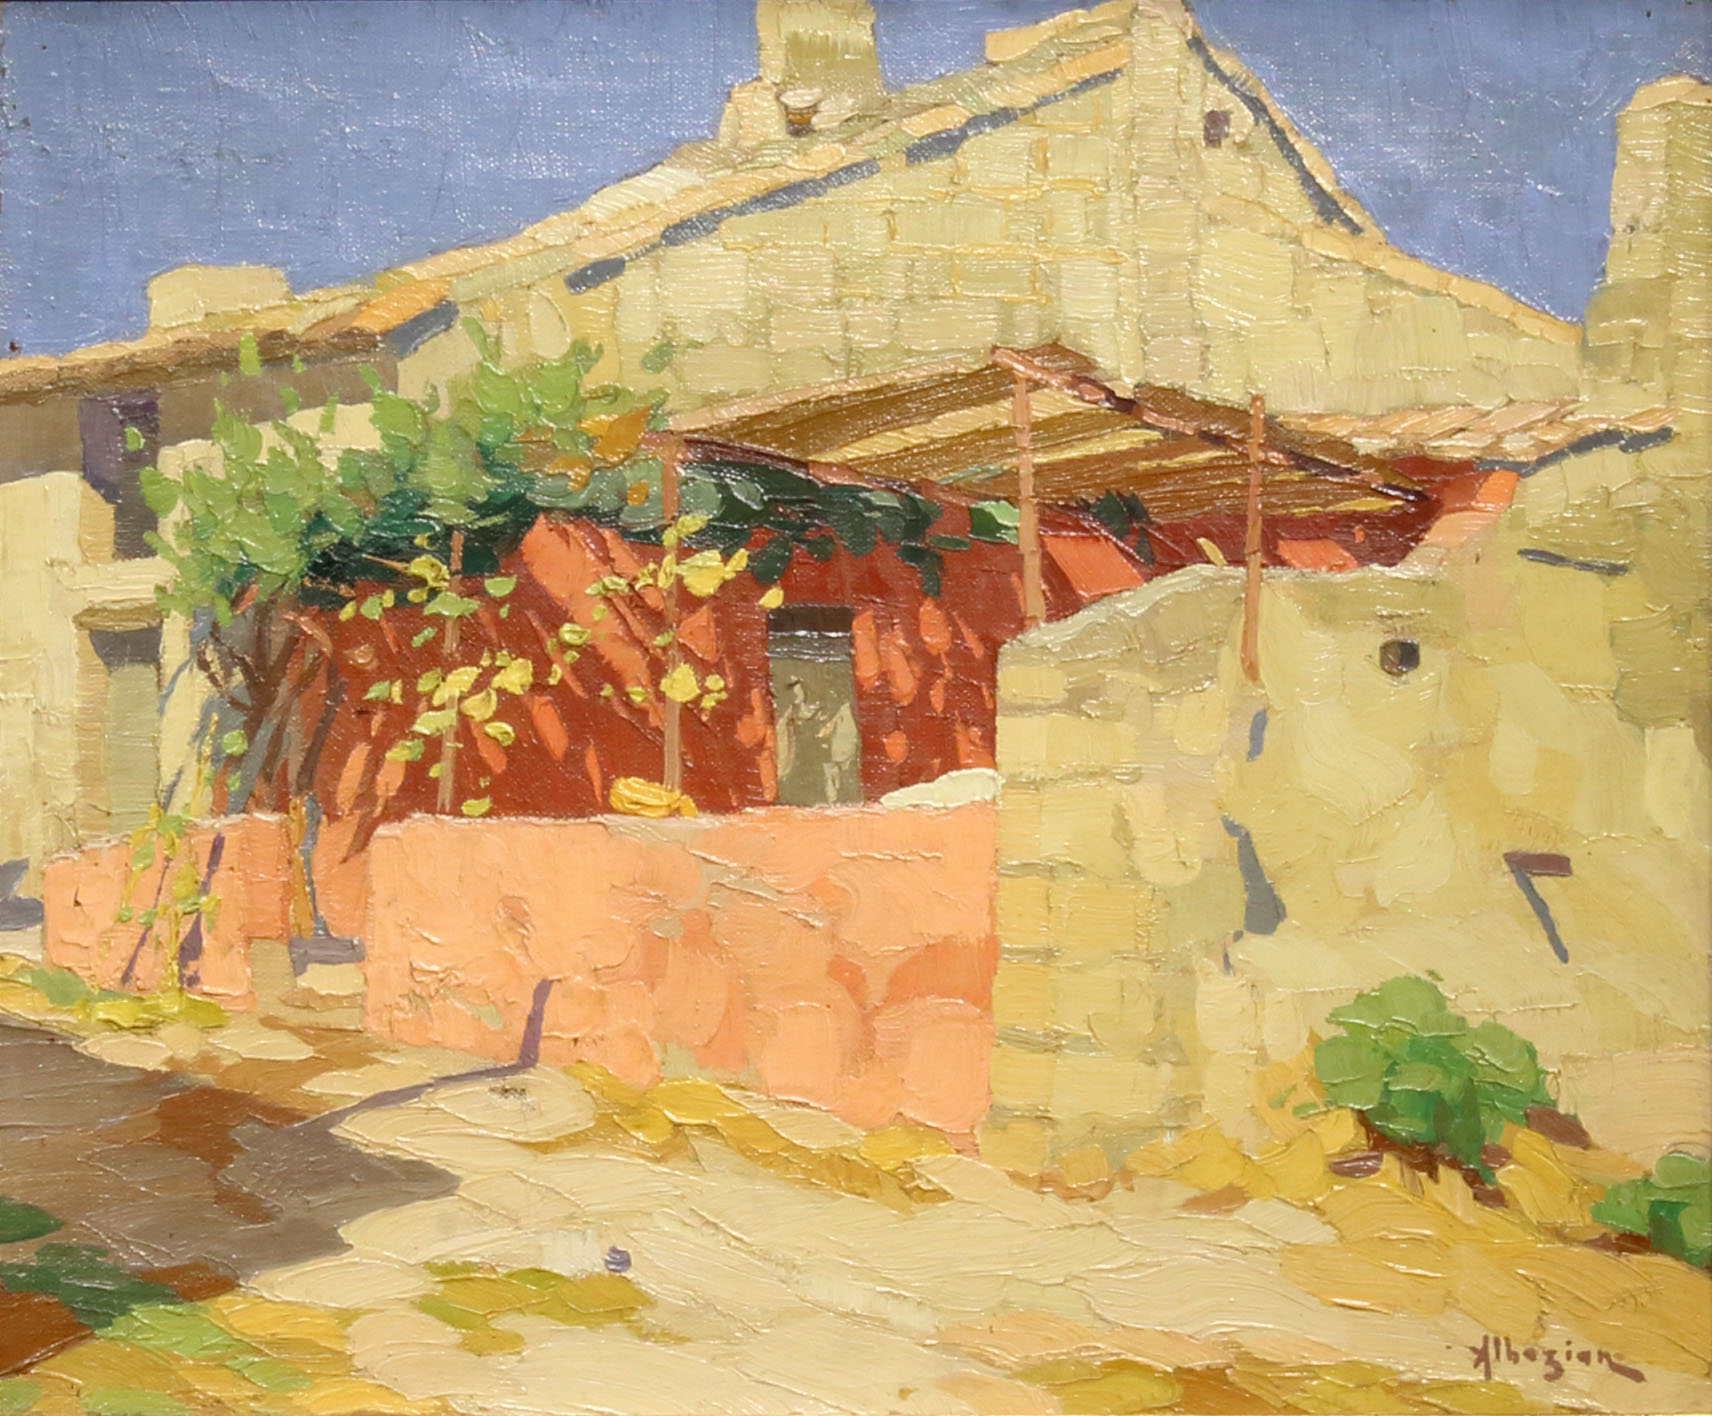 Ohannes Alhazian, La terrasse Ombragée, 15.5x20 inches, Oil on canvas